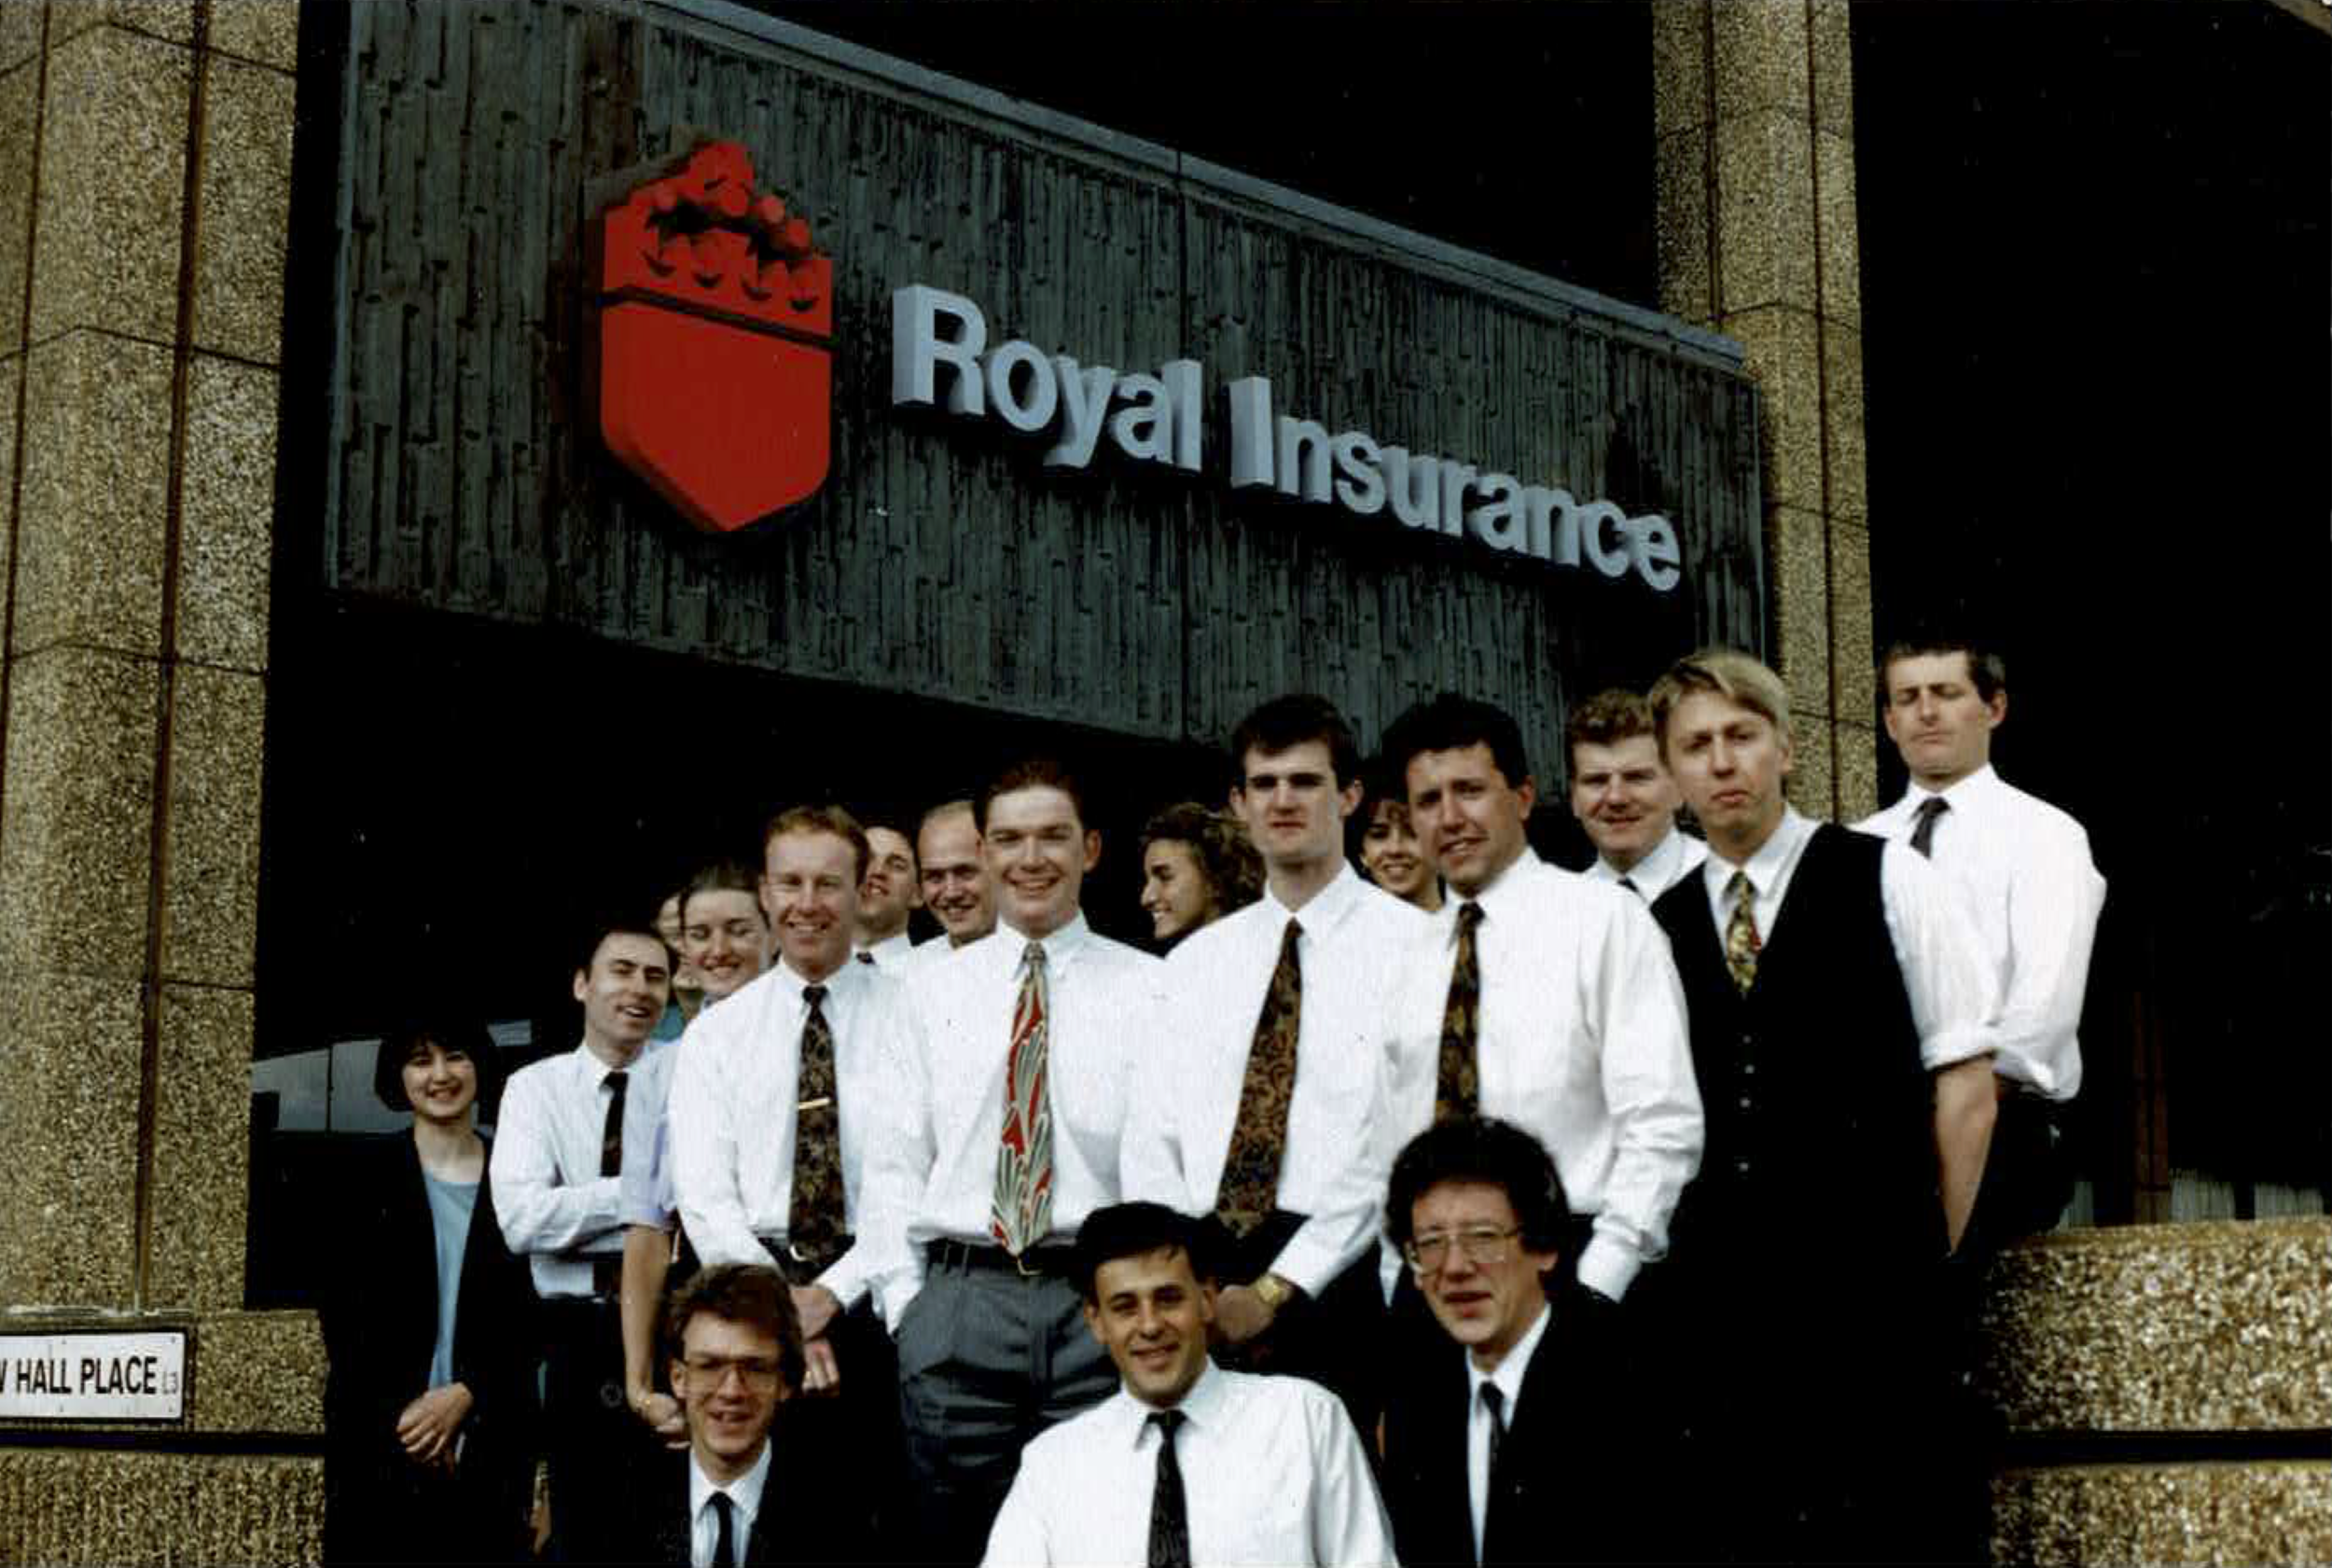 Team photo of staff at Royal Insurance